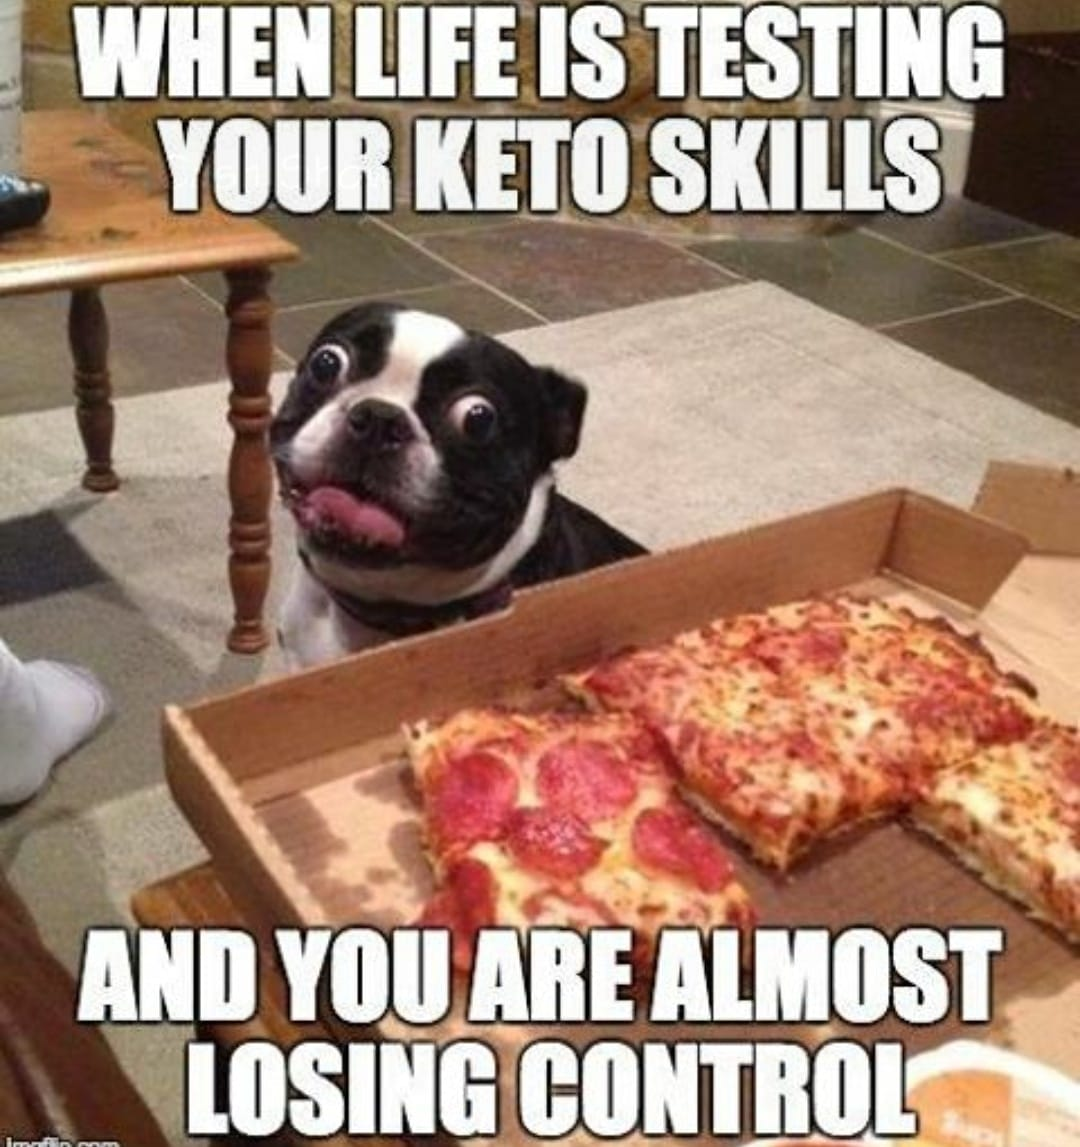 losing control of your diet dog staring at pizza when on keto